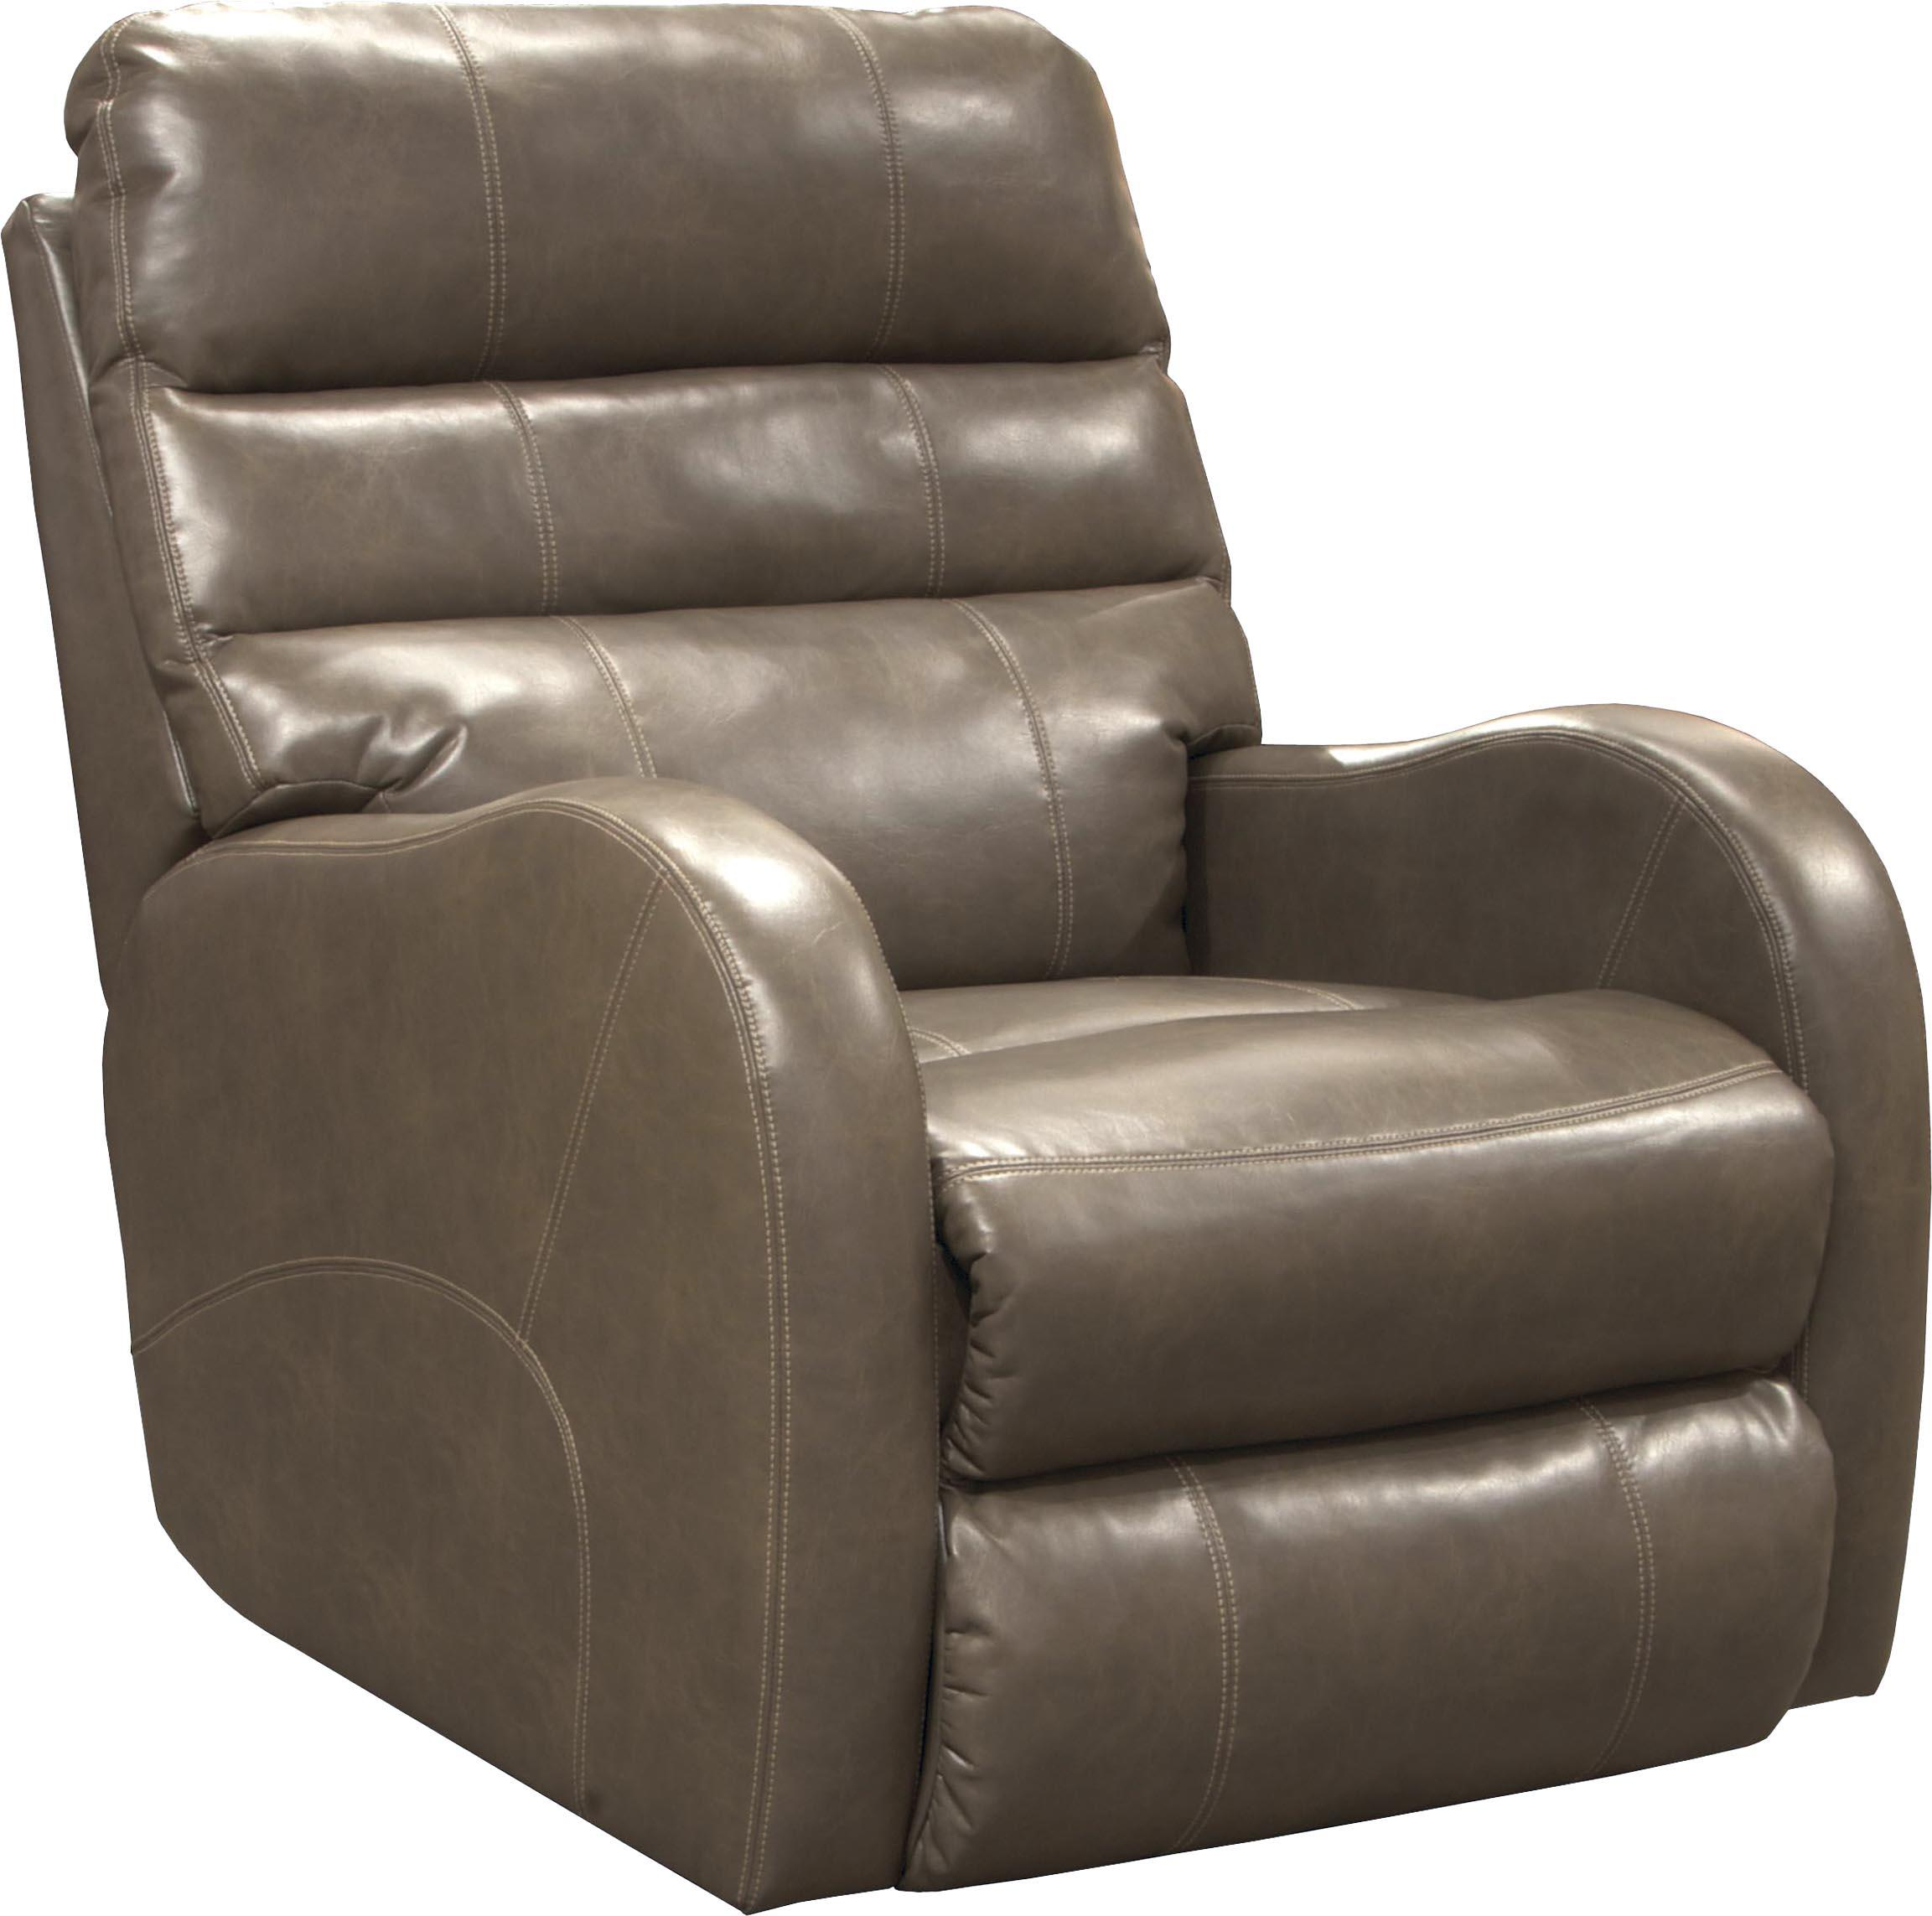 Searcy Power Recliner by Catnapper at Northeast Factory Direct